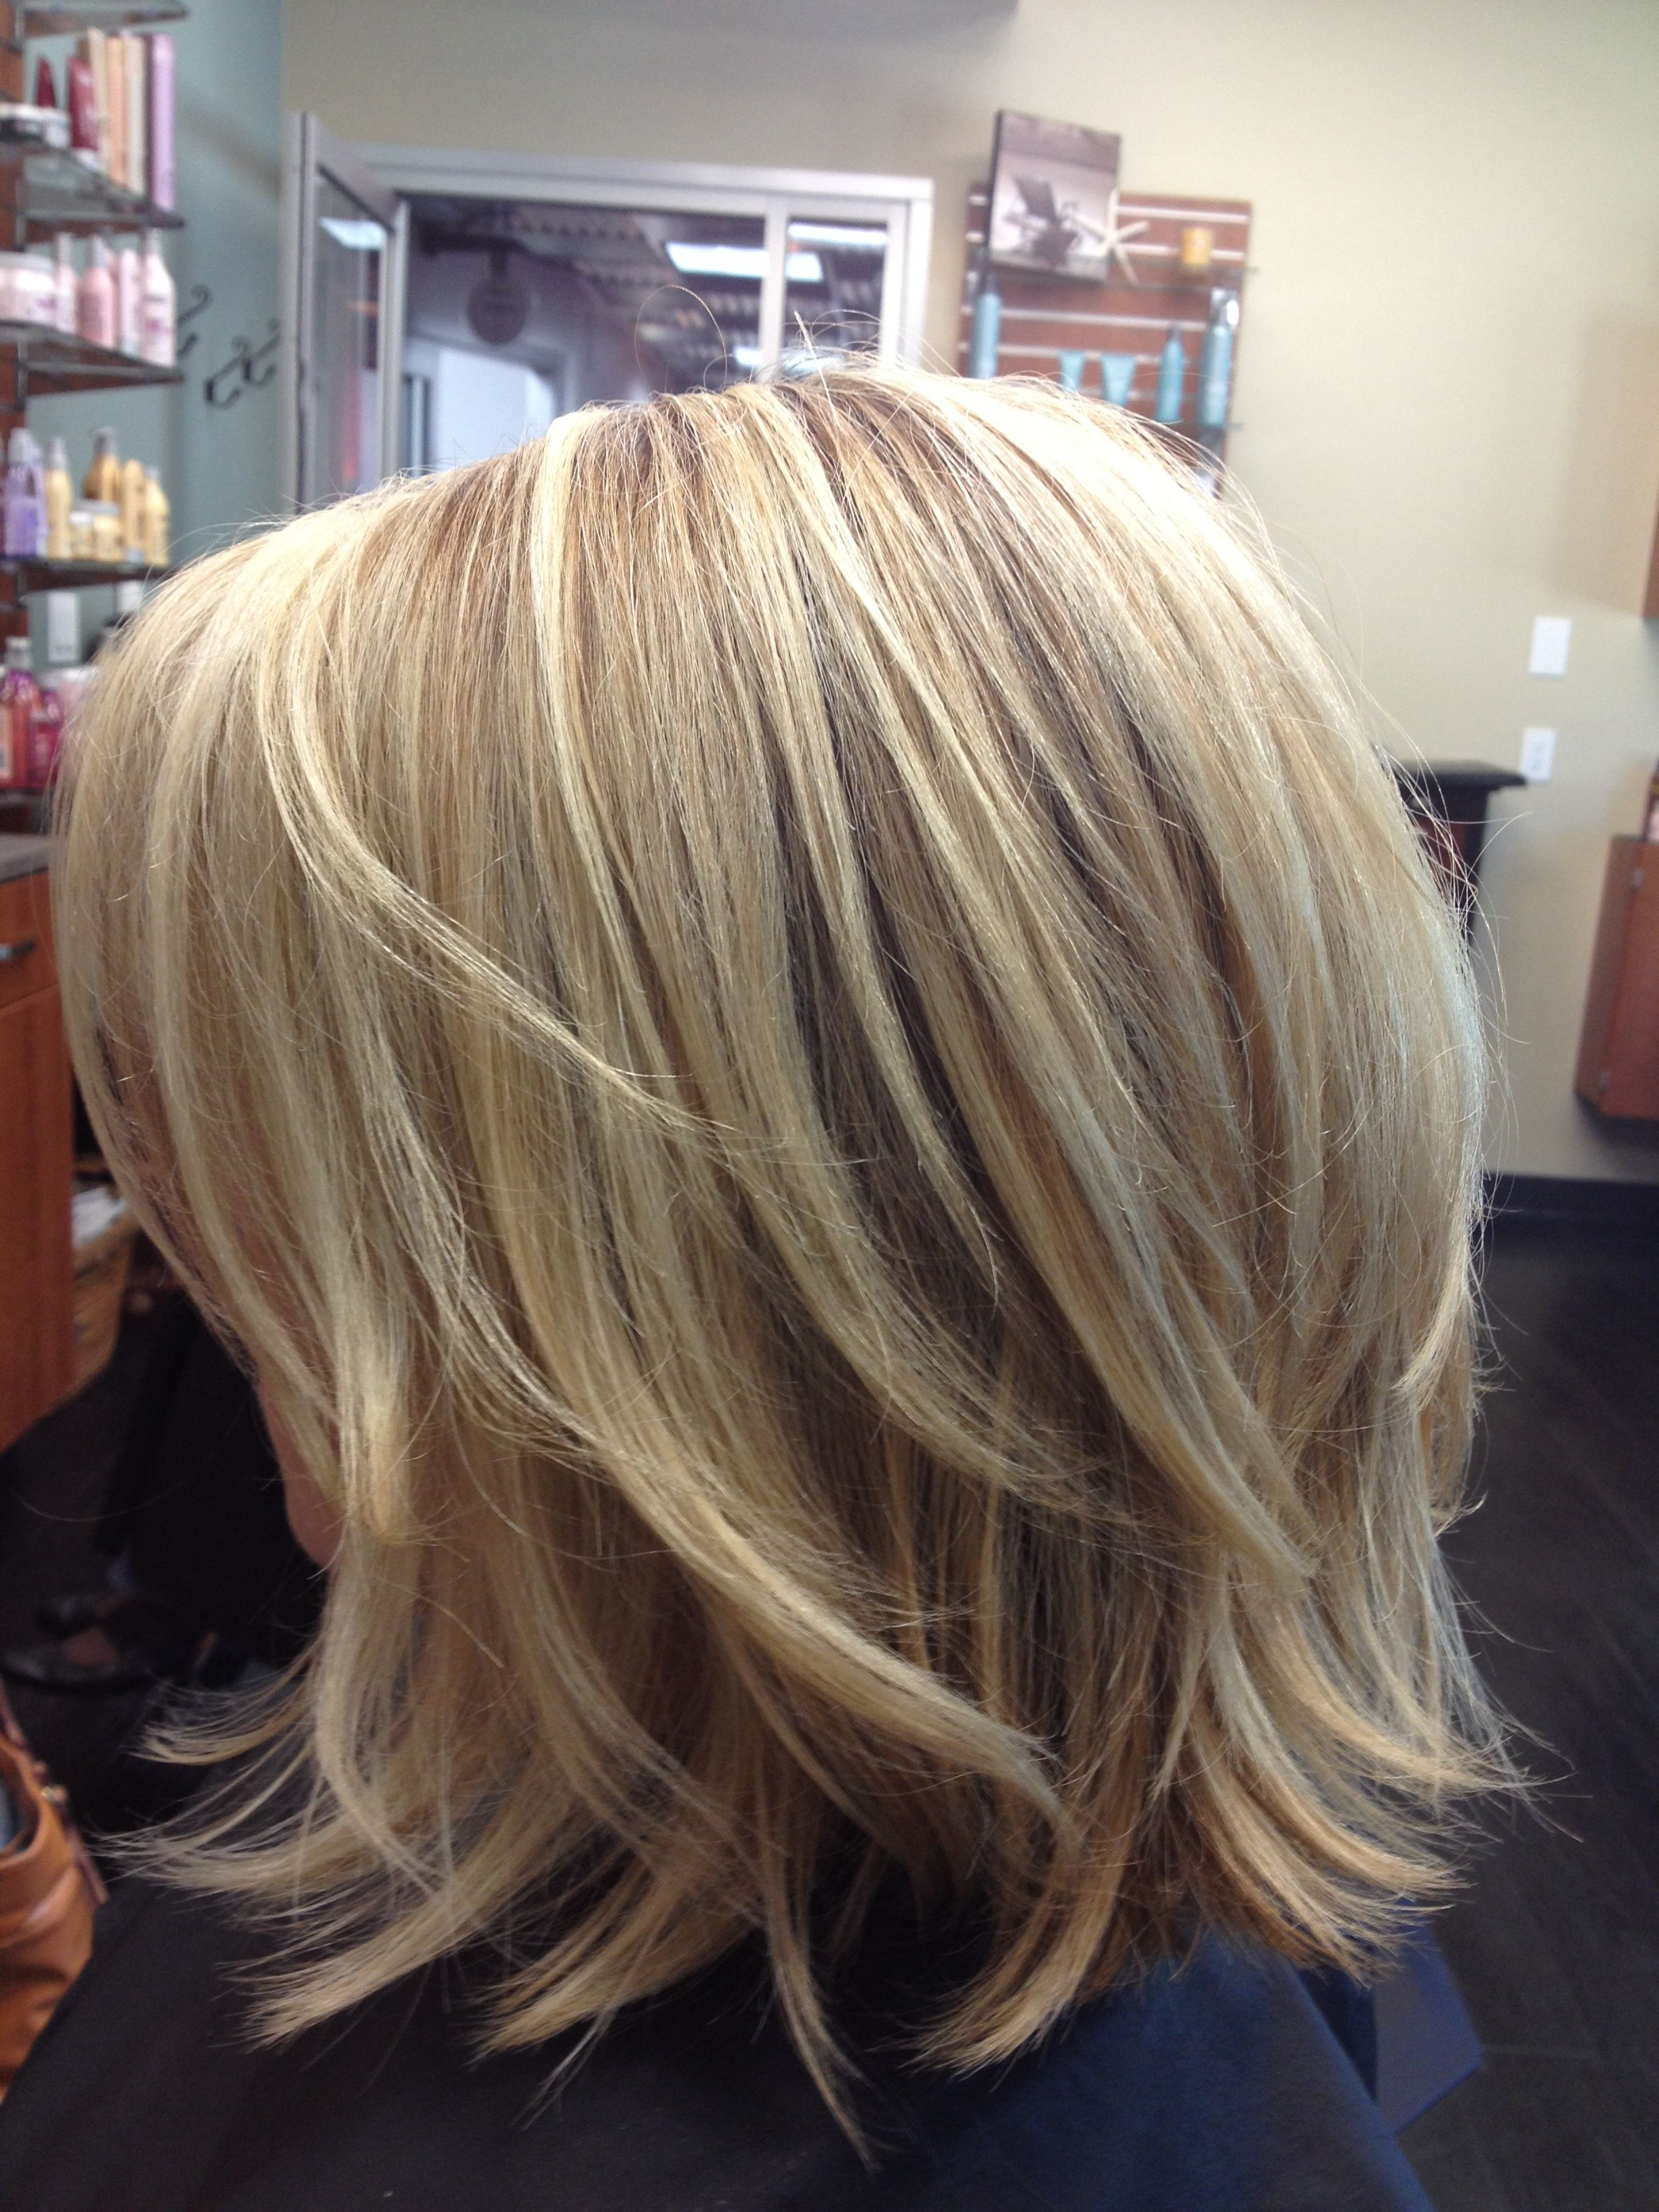 14 Trendy Medium Layered Hairstyles In 2018 | Hair | Pinterest In Chic Chocolate Layers Hairstyles (View 2 of 20)